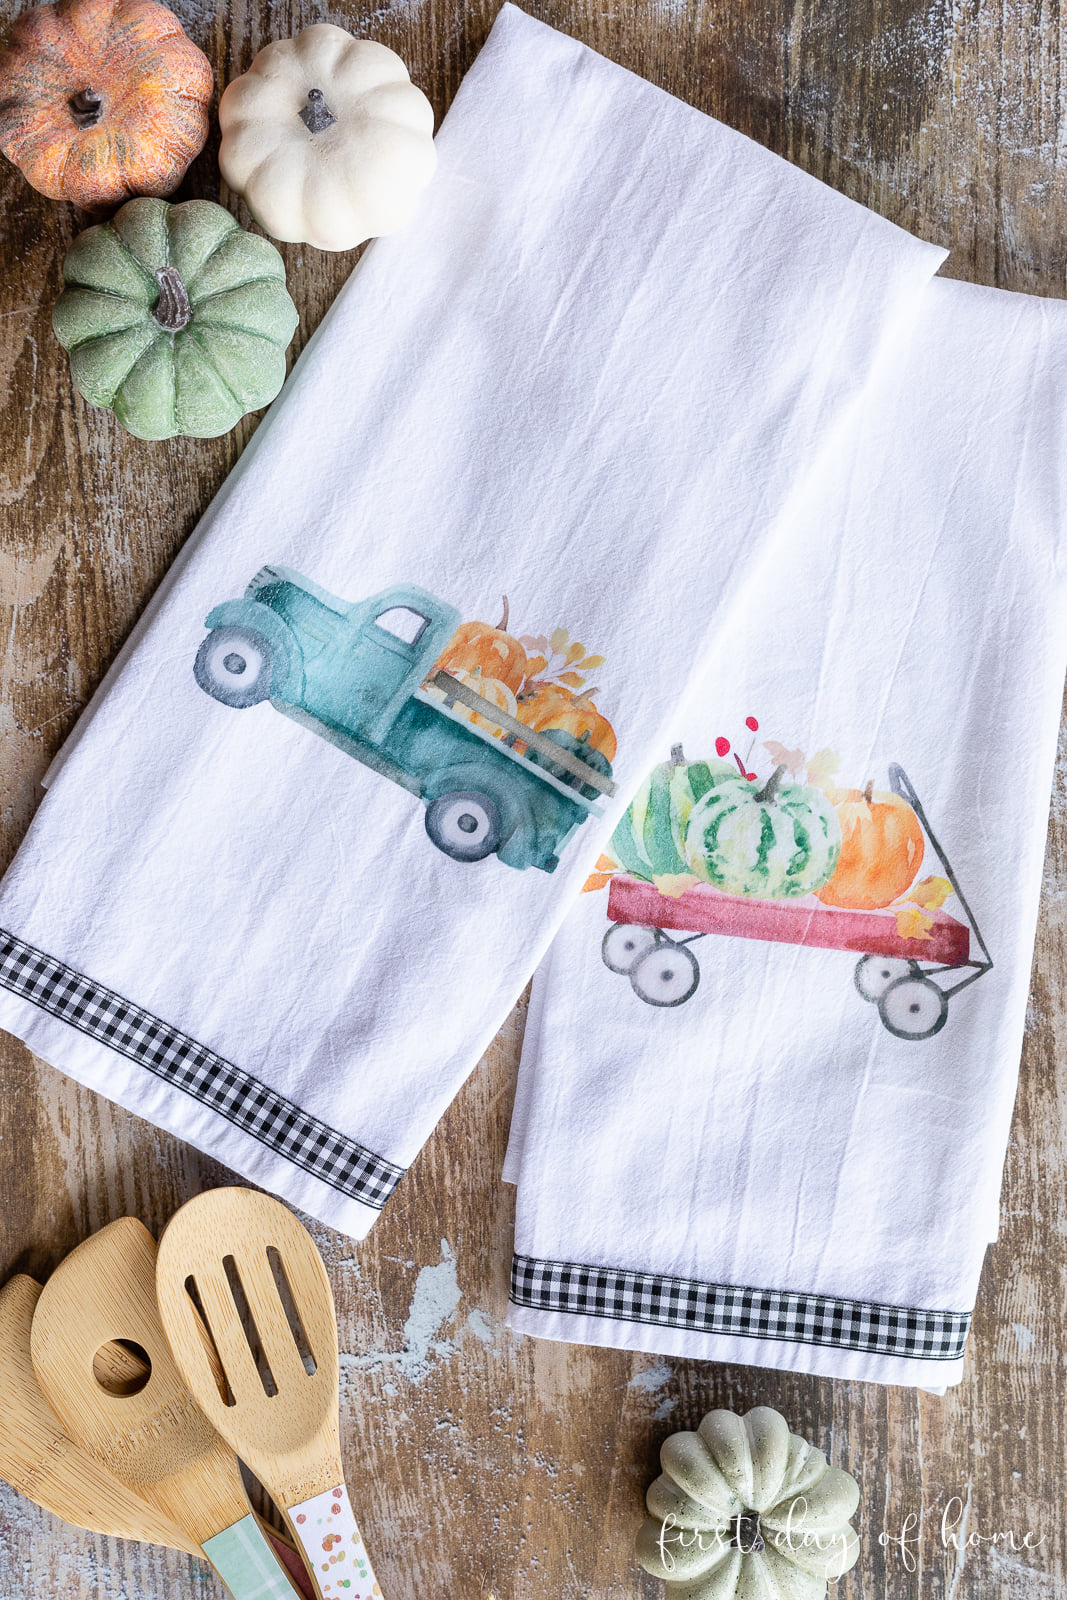 Tea towels with truck and pumpkin and a wagon with pumpkins